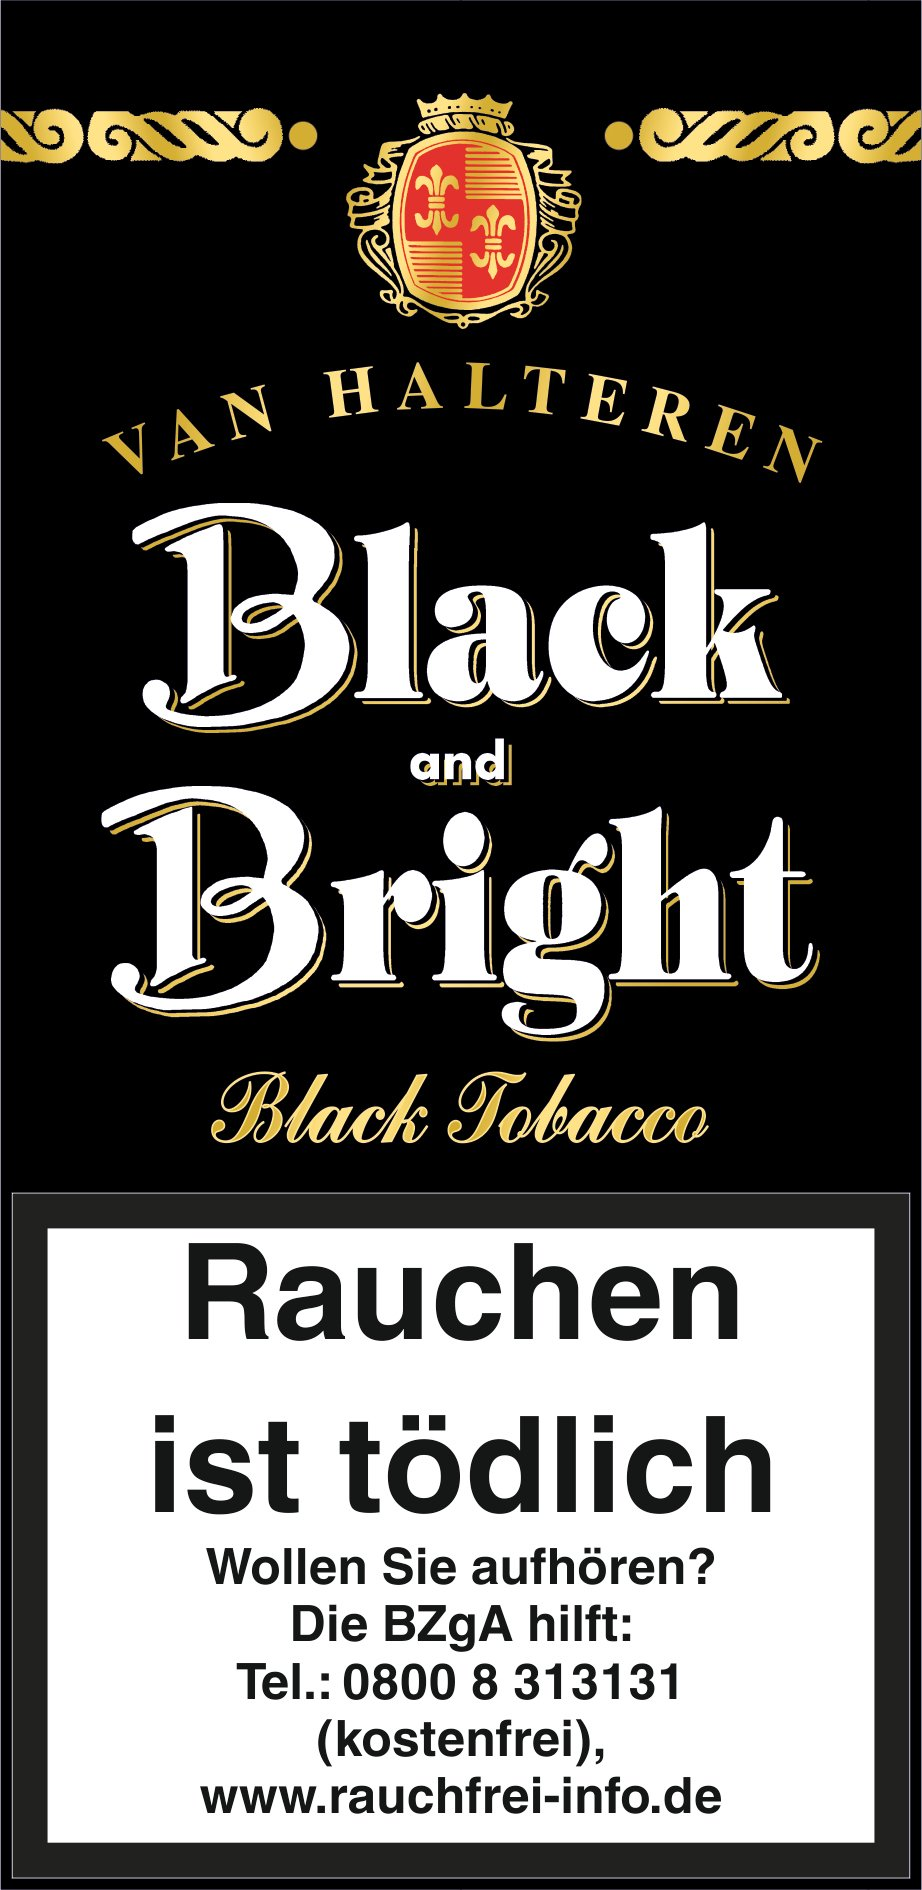 Van Halteren Black and Bright 50g Pouch